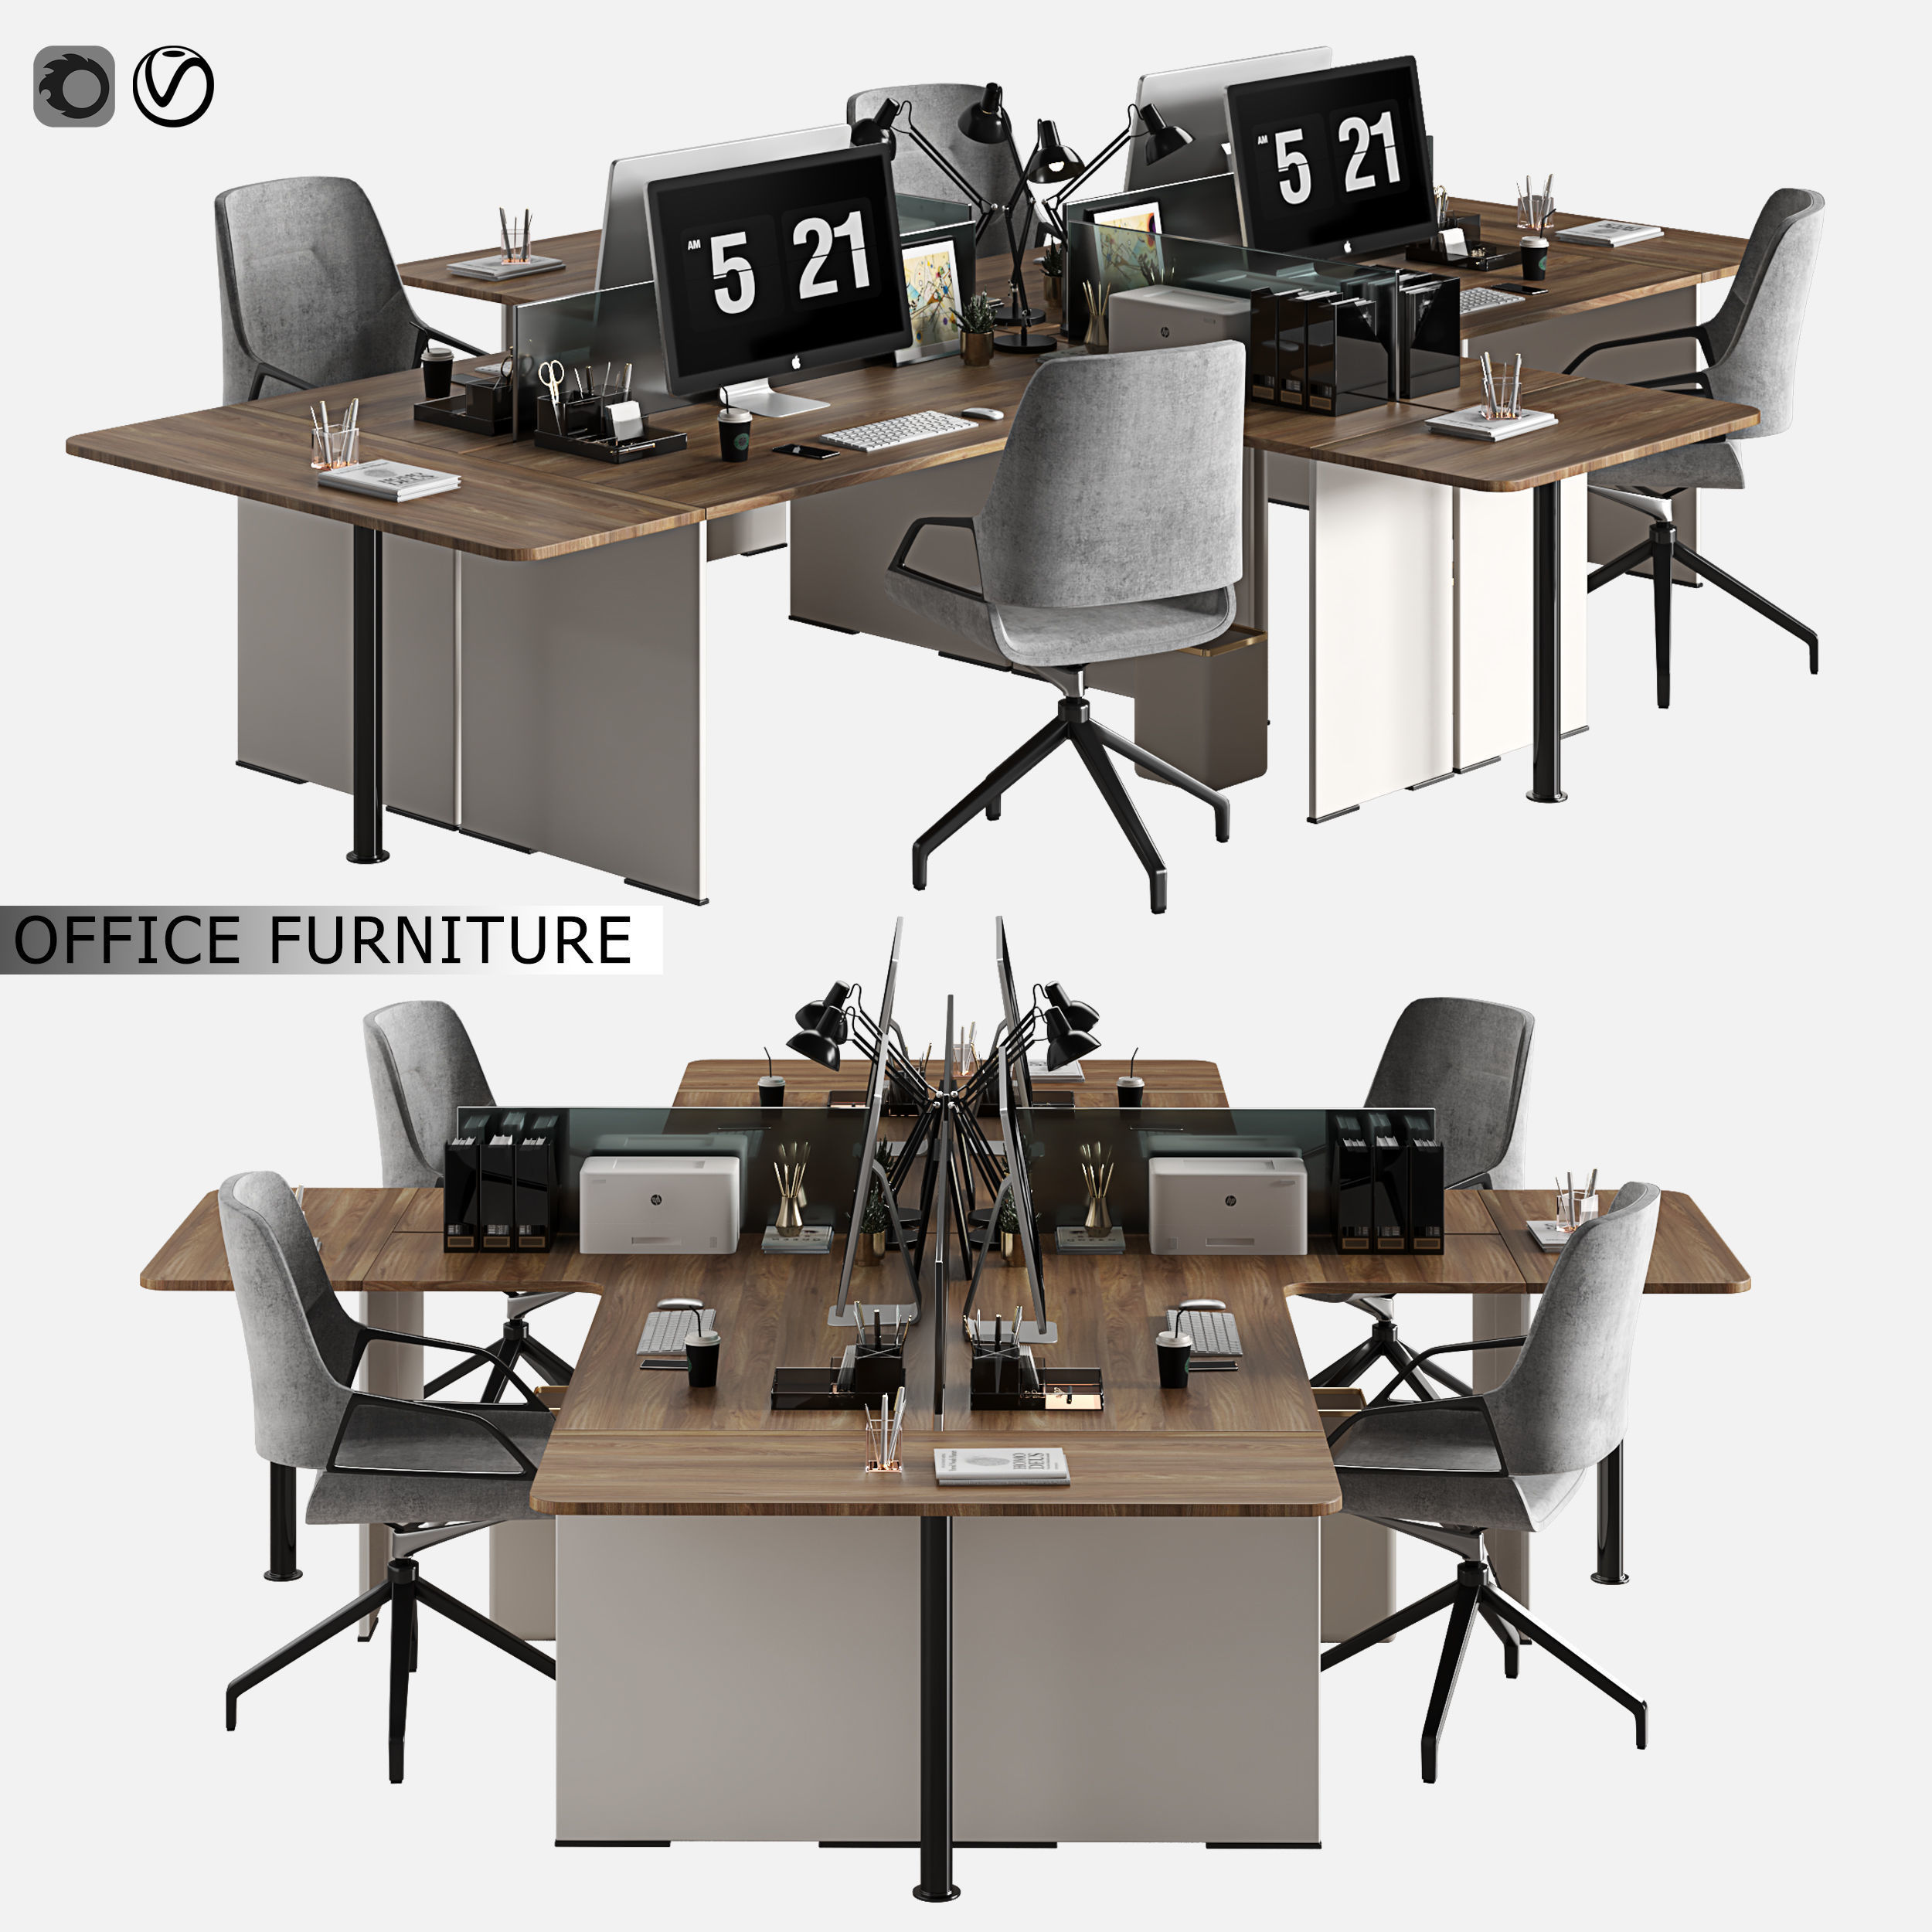 office furniture 07